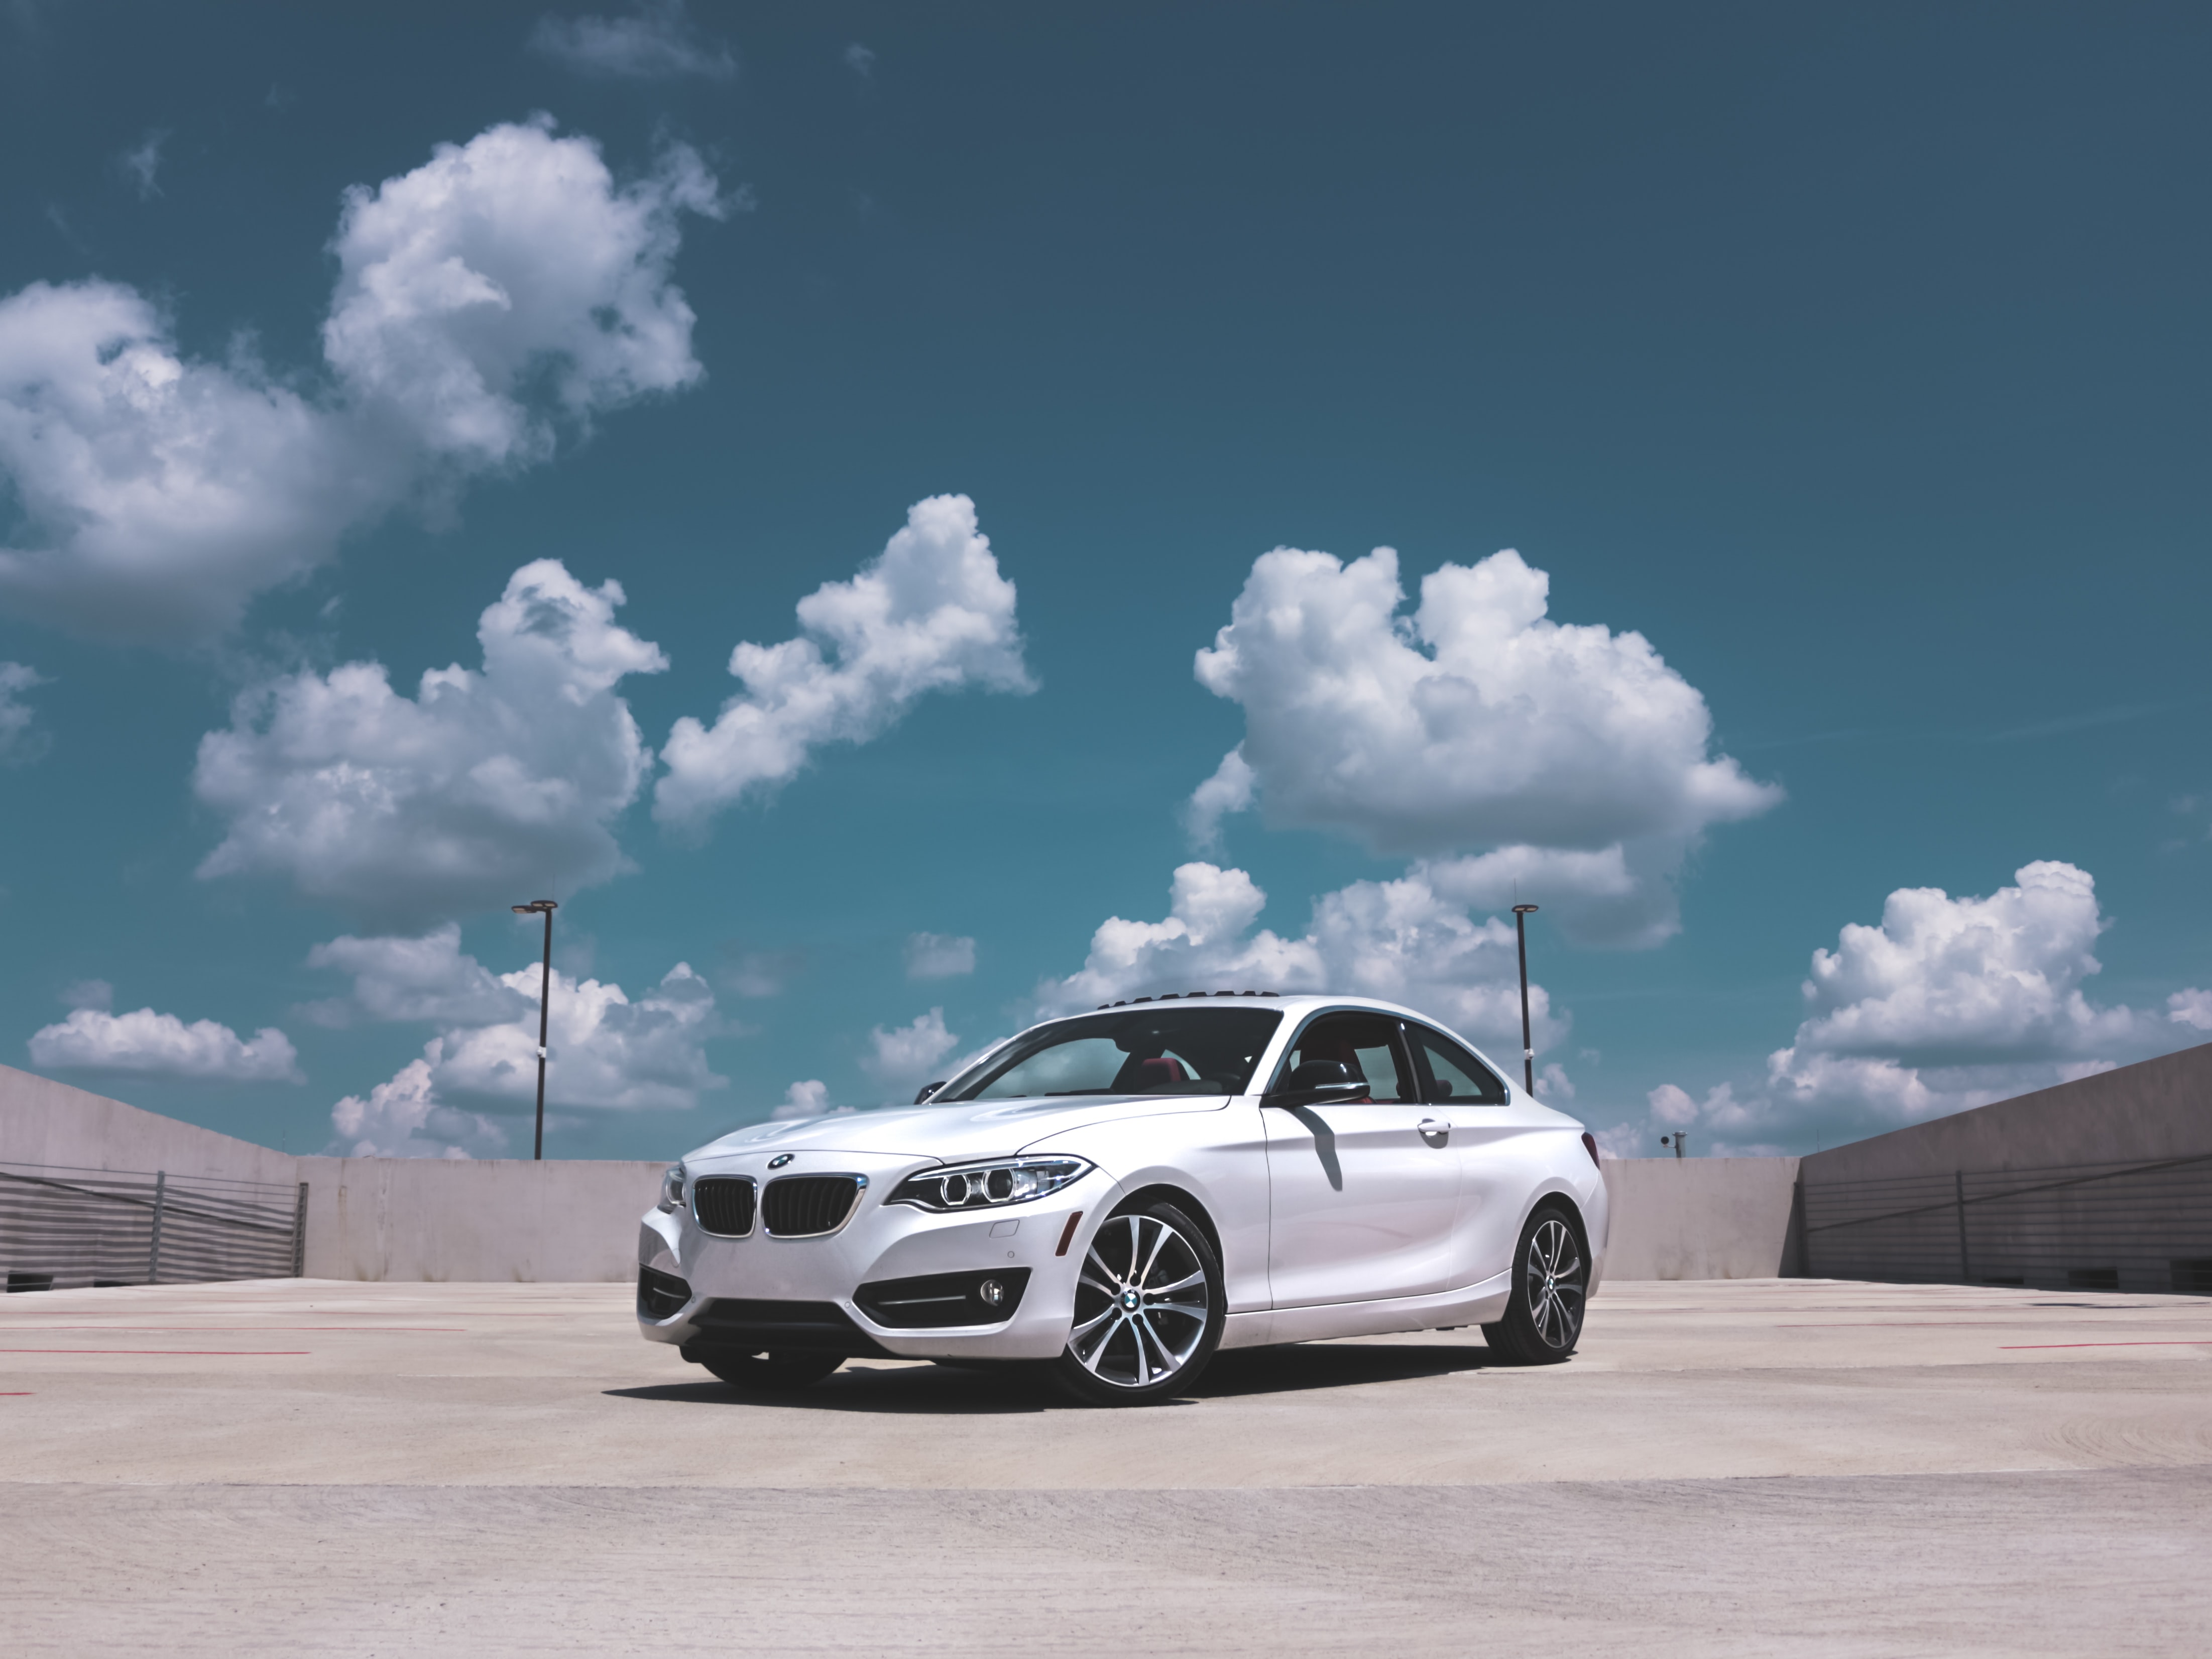 parked white BMW coupe